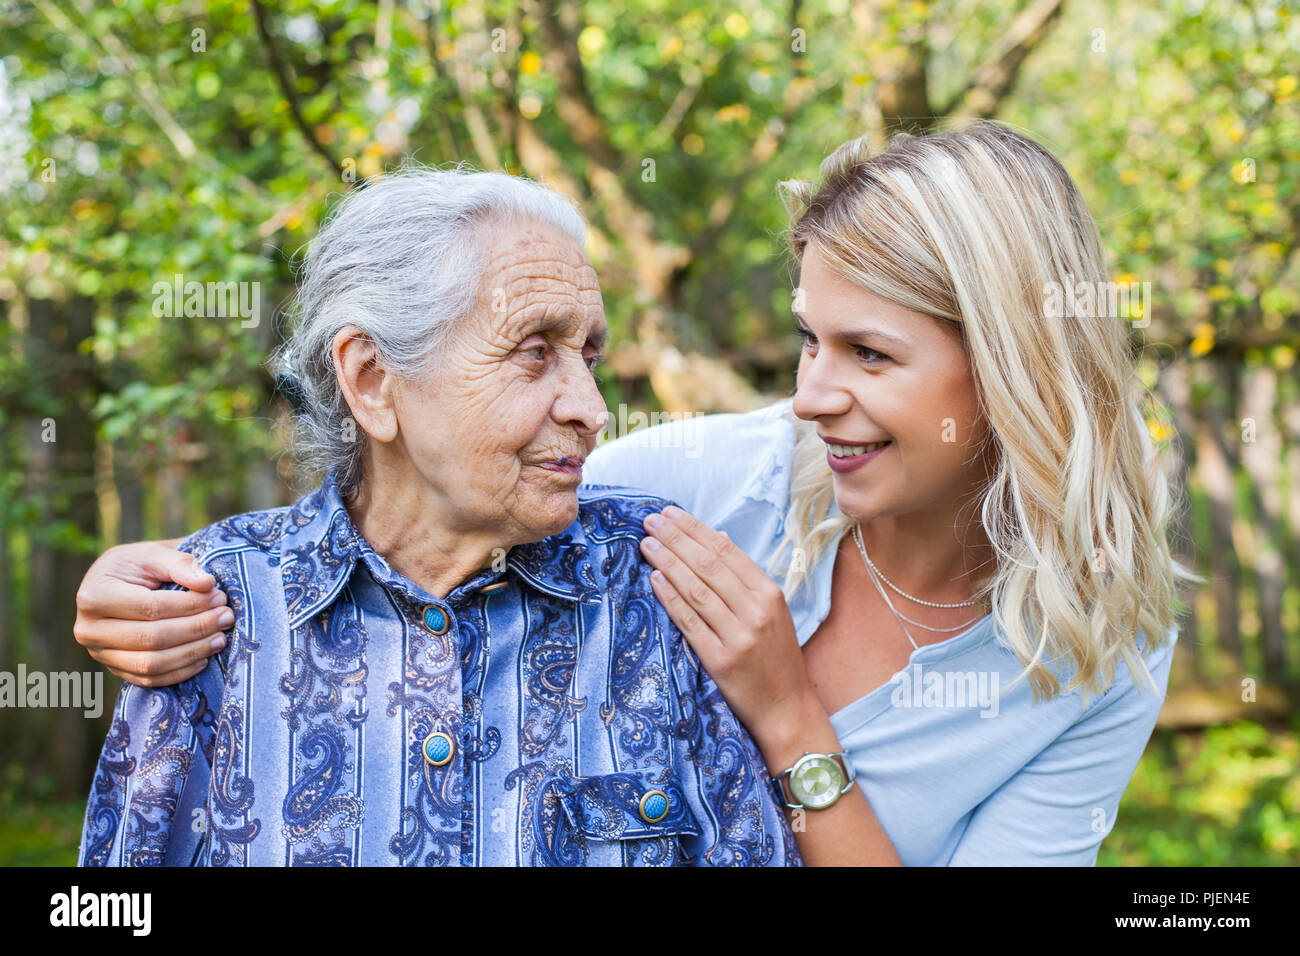 Smiling young caretaker walking with senior lady in the garden - Stock Image